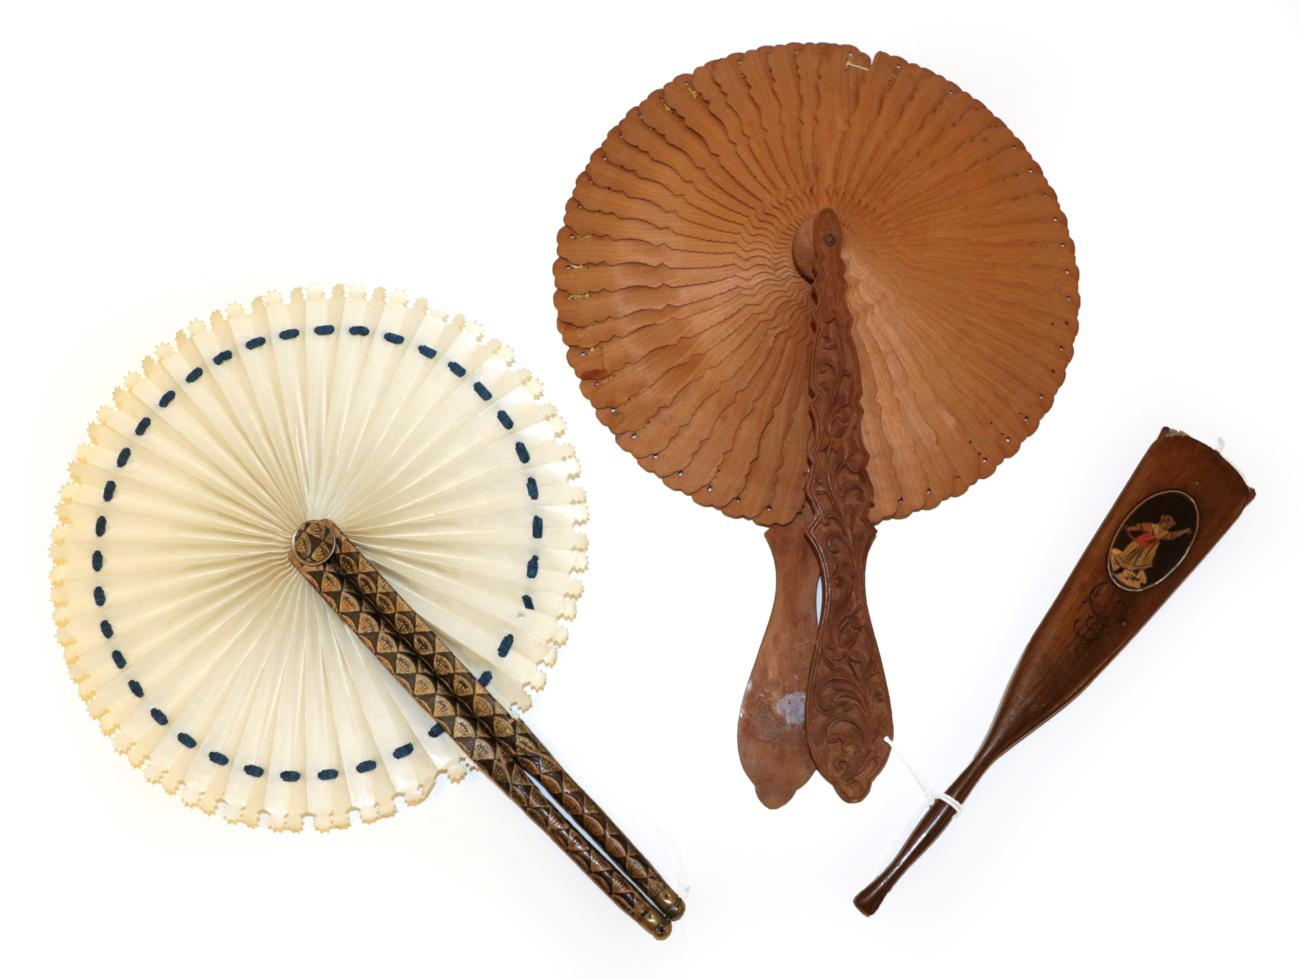 Lot 4036 - A Wood Cockade Fan with elaborately carved and shaped handles, these featuring scrolling...